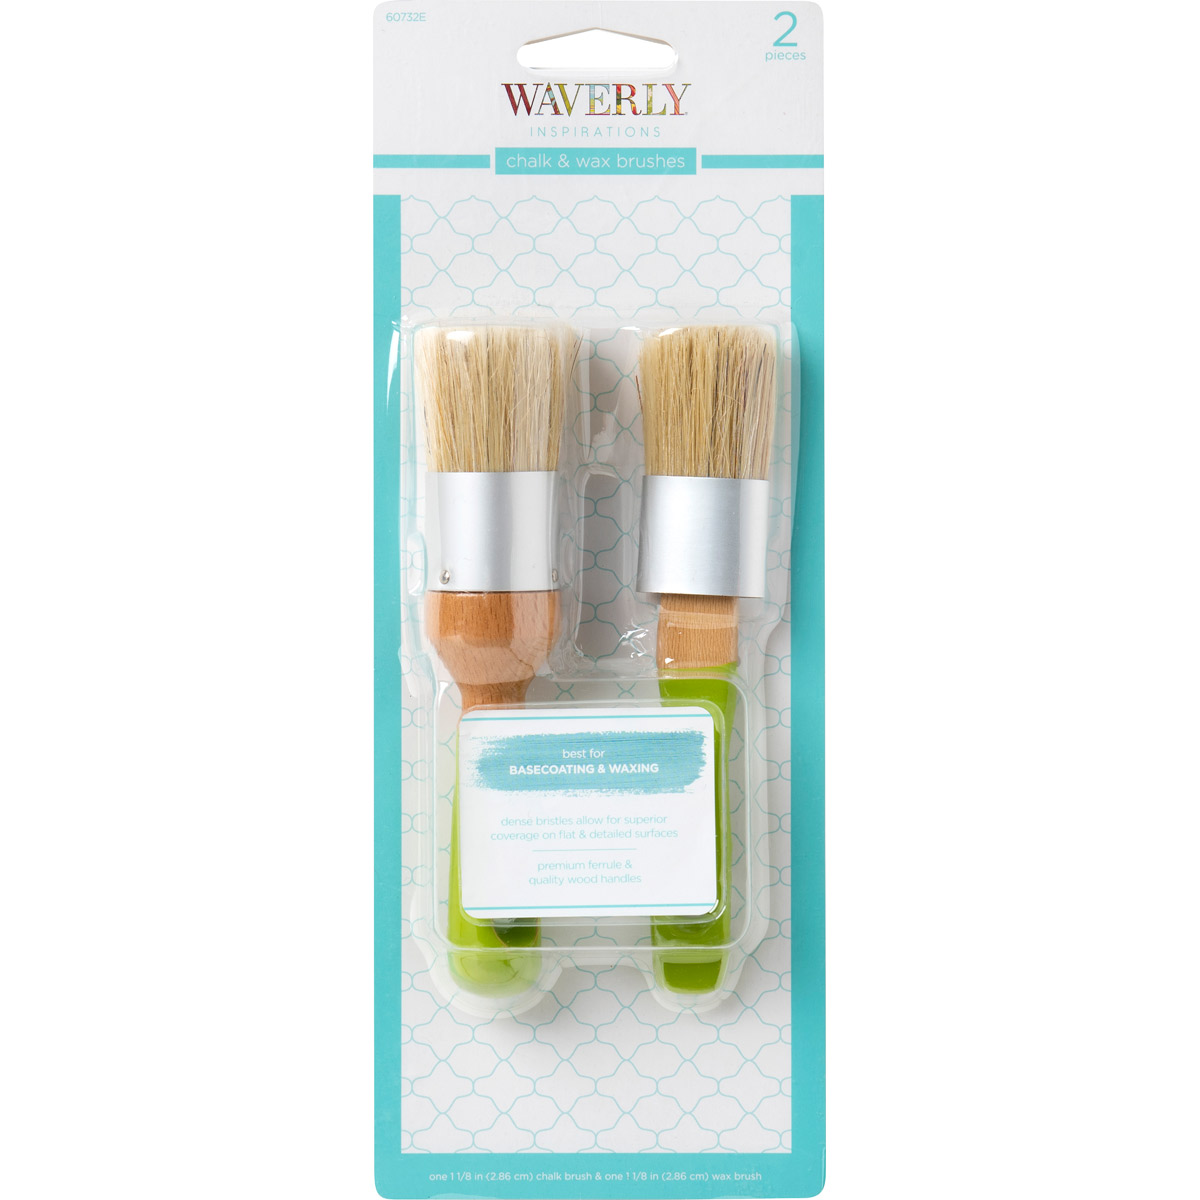 Waverly ® Inspirations Brushes - Chalk & Wax Combo - 60732E